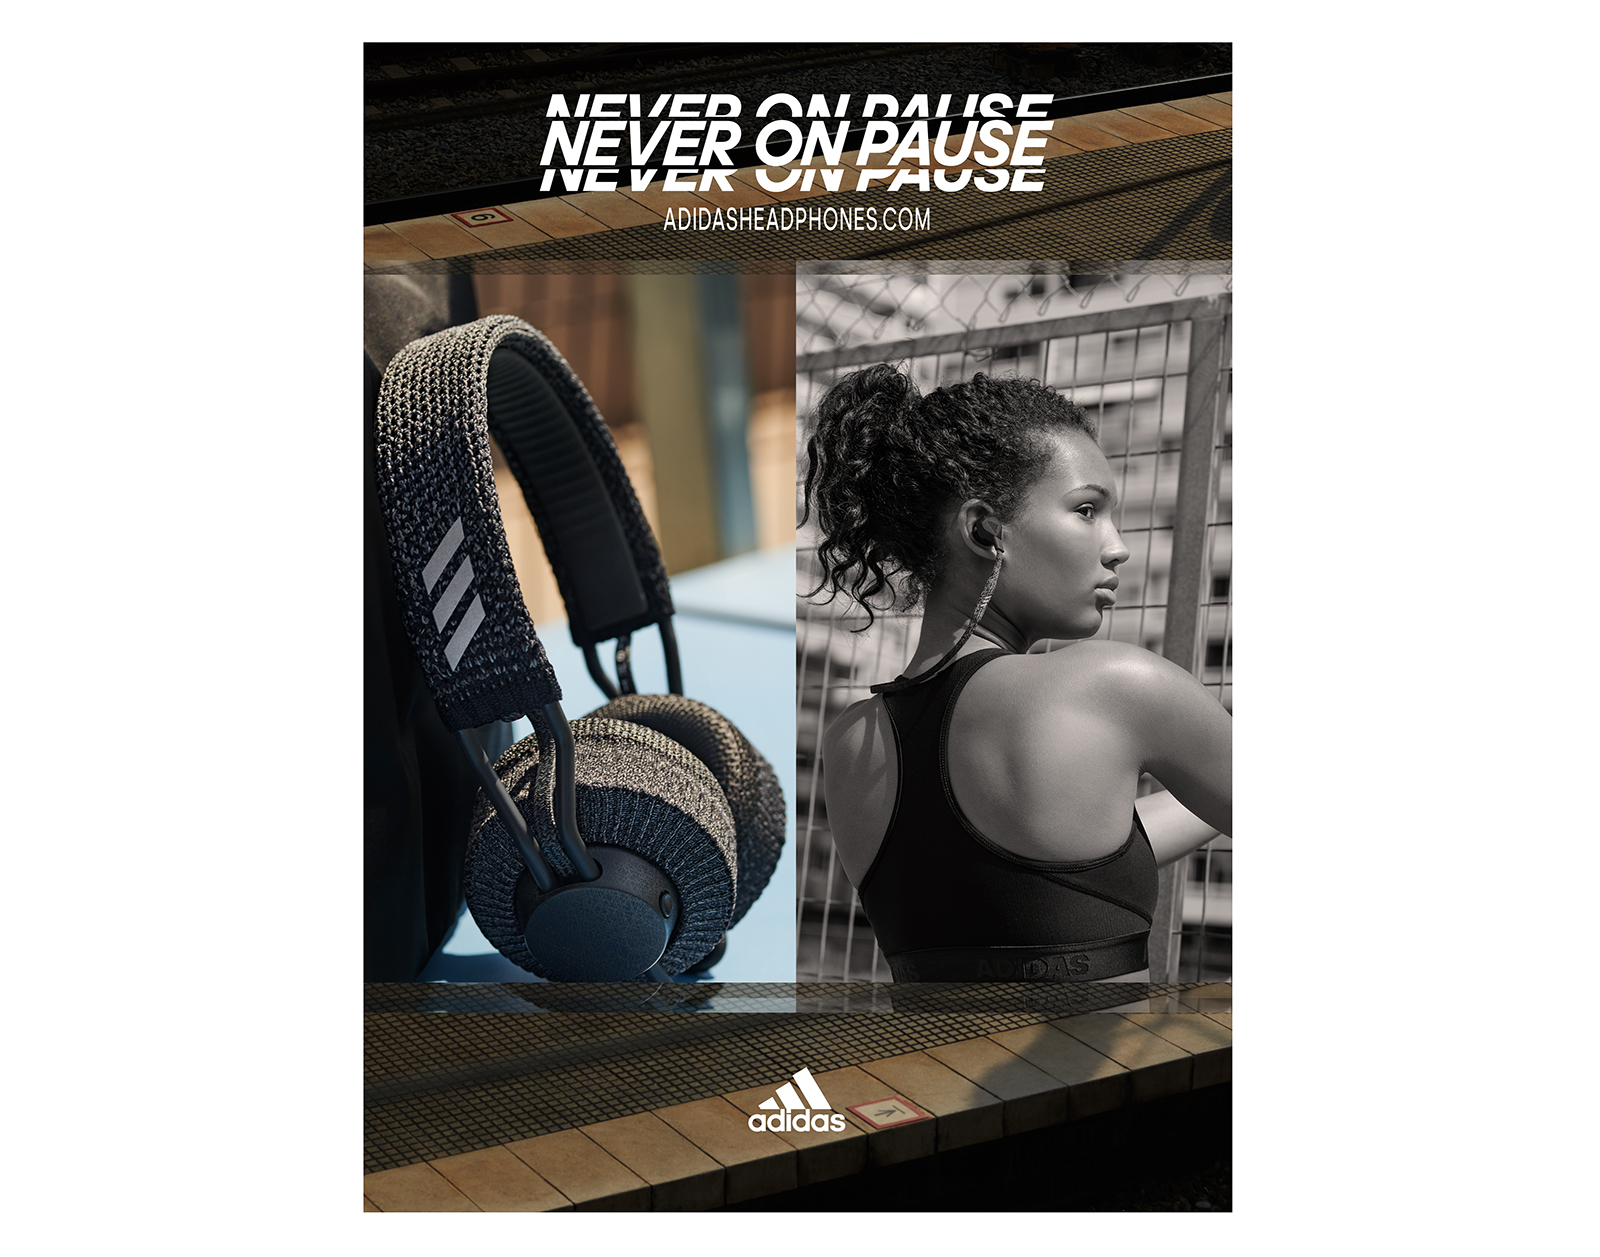 ASS_adidas_never on pause 06.jpg